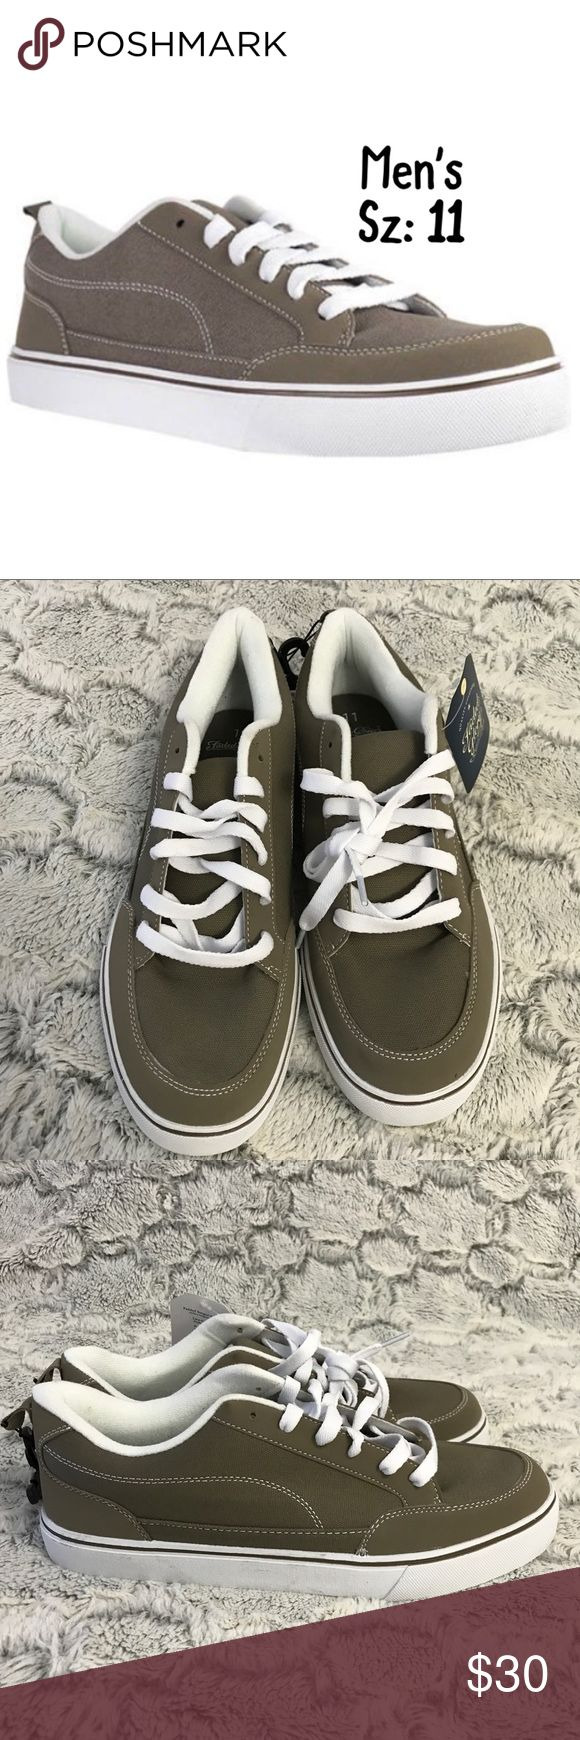 💫NWT🍂Winter men's faded Glory shoe Sz: 11🤖 New Men's Faded Glory canvas skate shoe Sz: 11.  Brand new w Tags.  Priced to sell... do not low ball.  Bundle to save. Faded Glory Shoes Sneakers